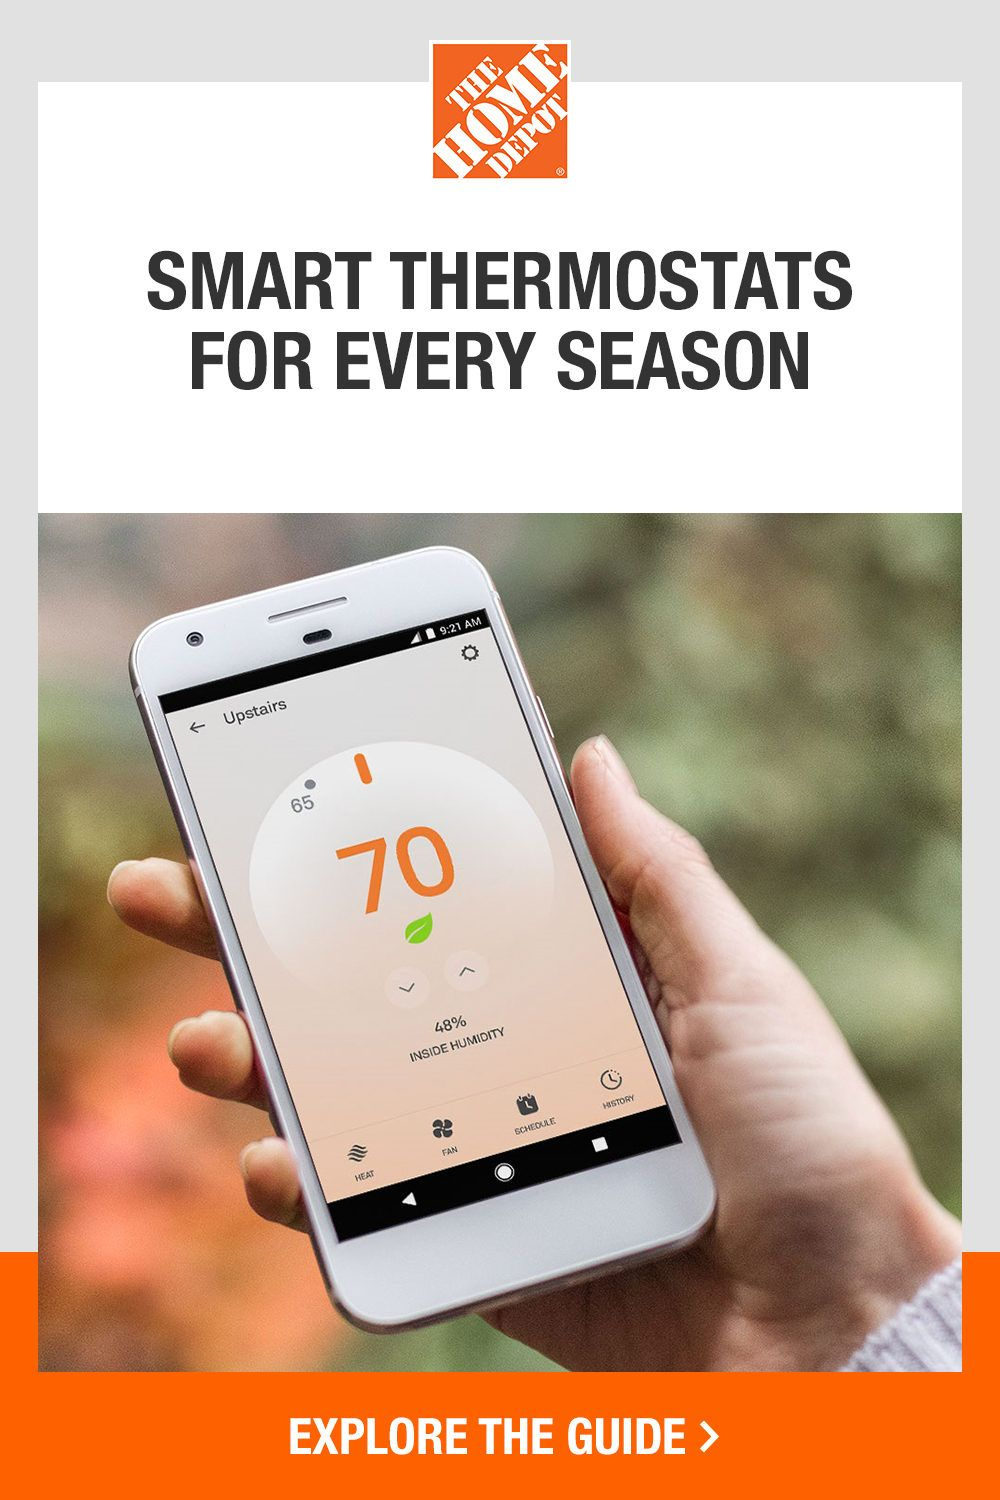 Upgrade your thermostat with help from The Home Depot. Smart thermostats are quickly becoming the most popular choice with their Wi-Fi and app capabilities. Plus, this thermostat types helps to lower monthly energy costs—great option for every season. Click to explore The Home Depot buying guide to find the right thermostat for your home.